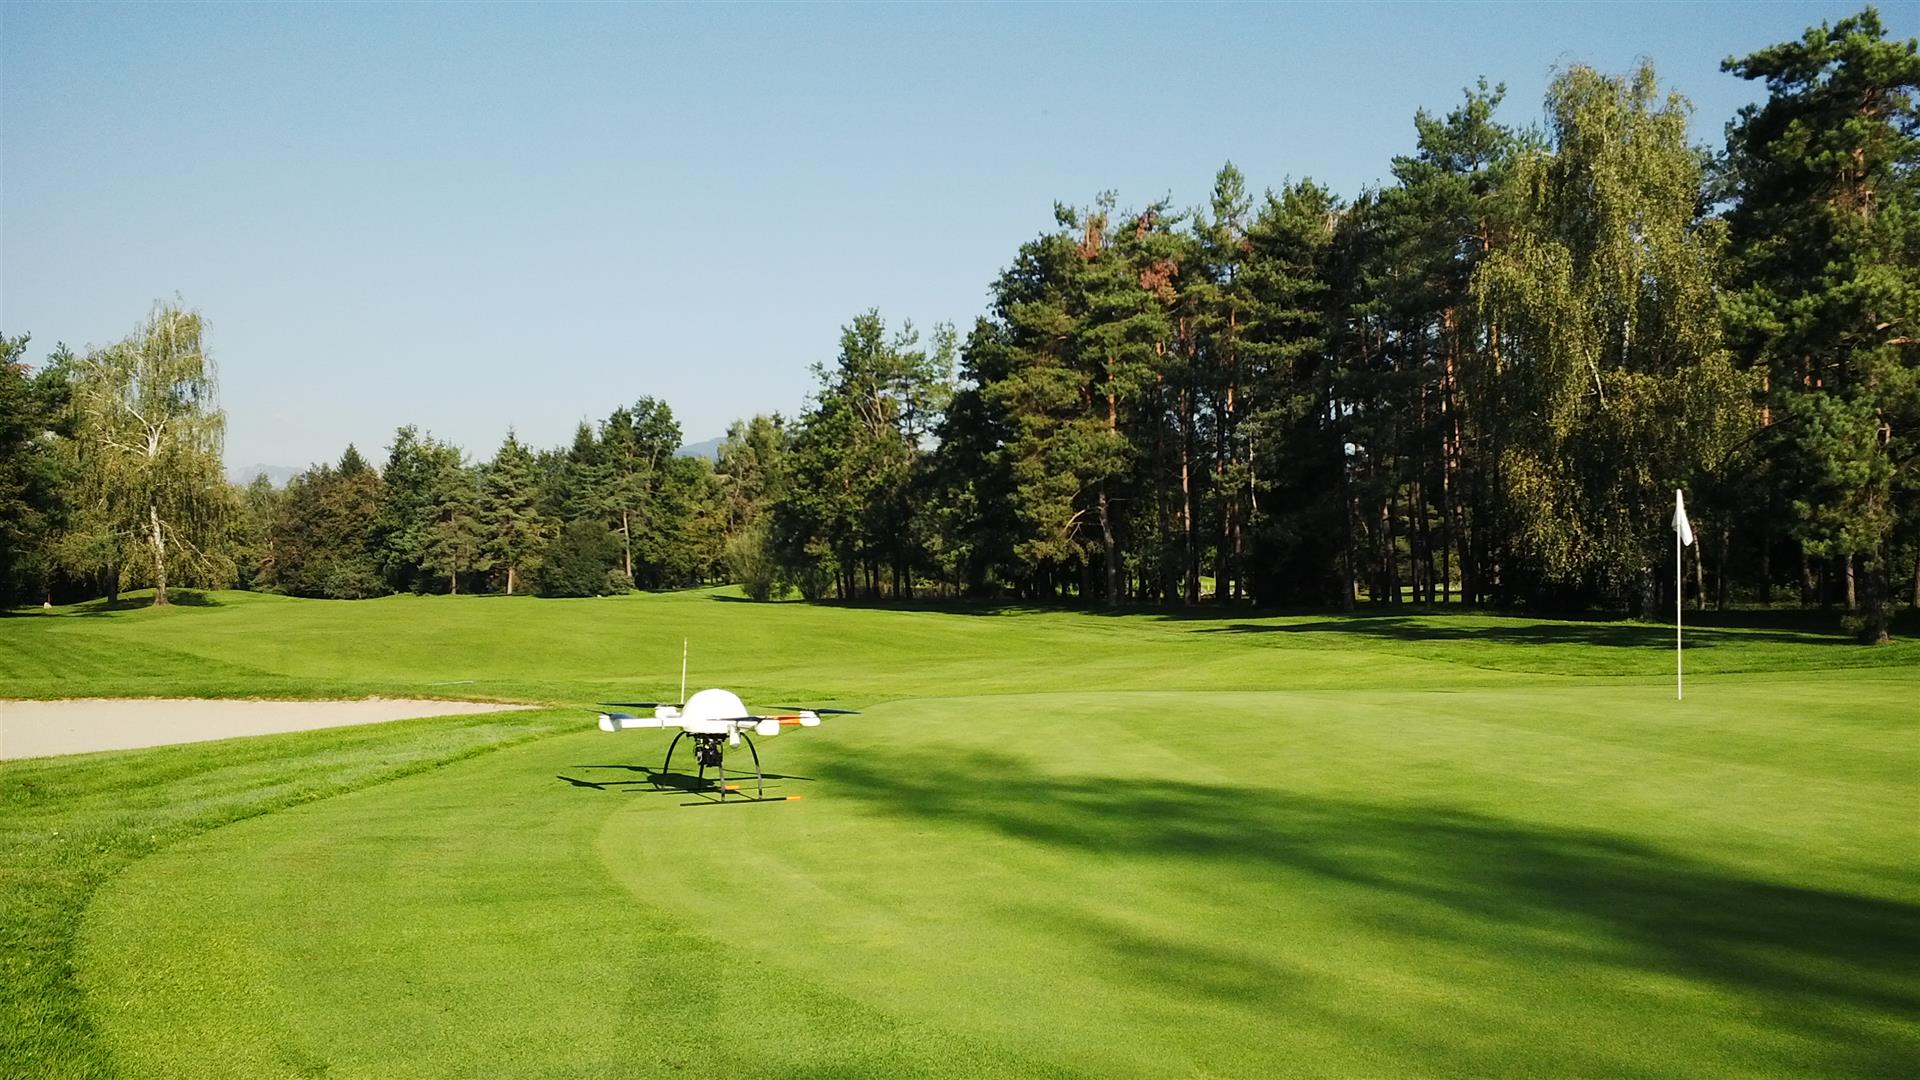 golf course survey The official site of weaver ridge golf club, located in peoria, il.